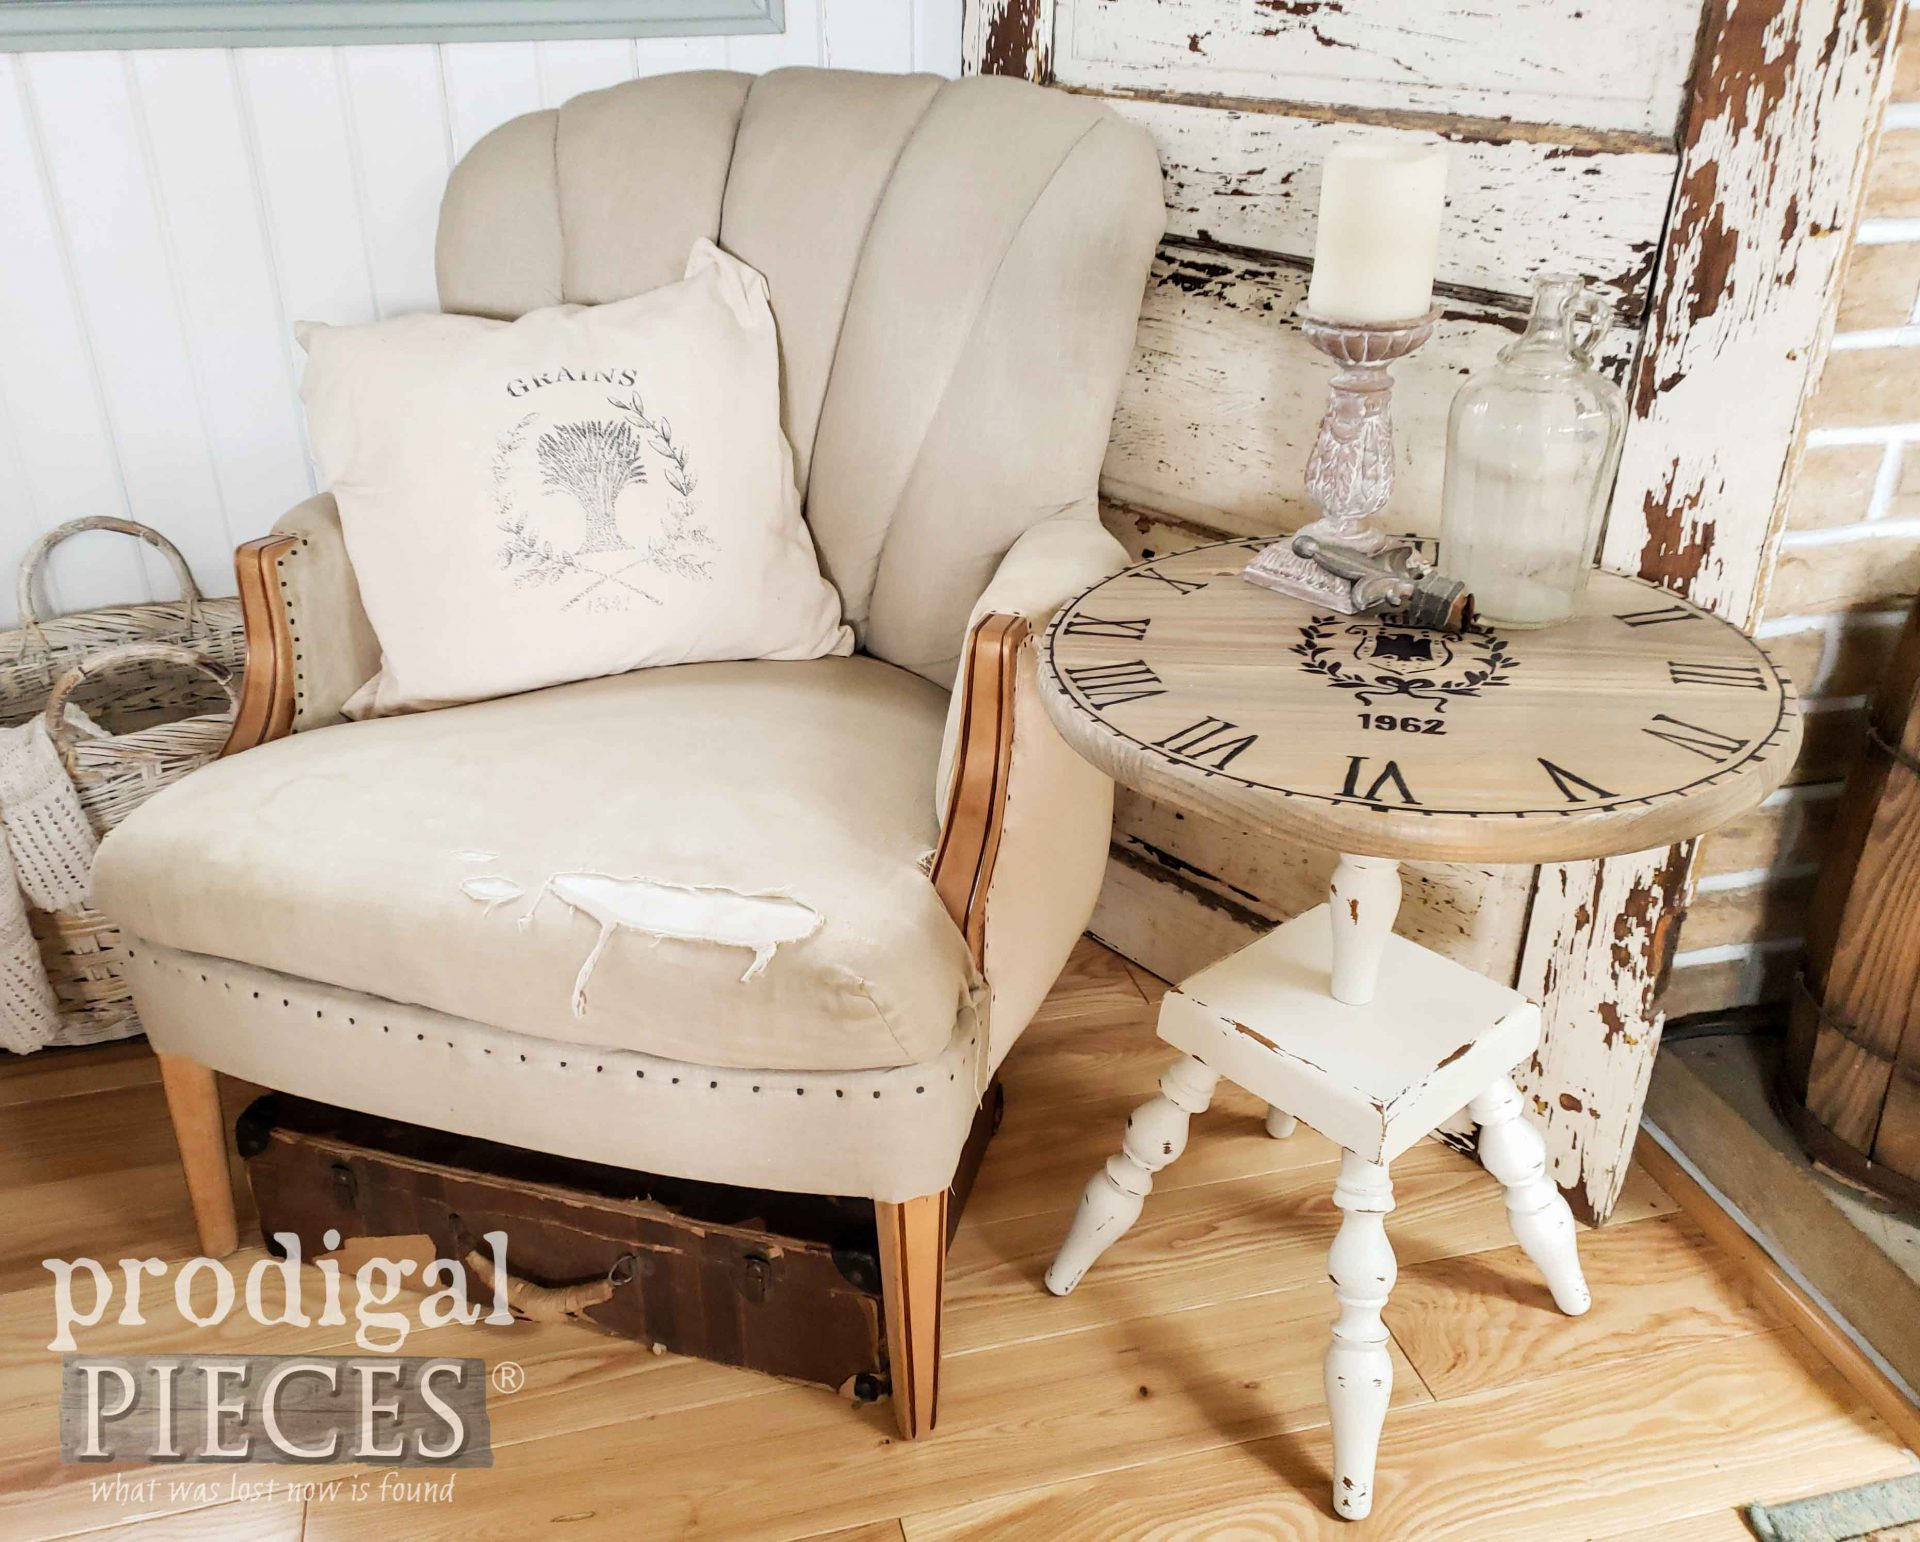 Rustic Chic Living Room with DIY Decor Upcycled Clock Face Table by Larissa of Prodigal Pieces | prodigalpieces.com #prodigalpieces #diy #furniture #home #homedecor